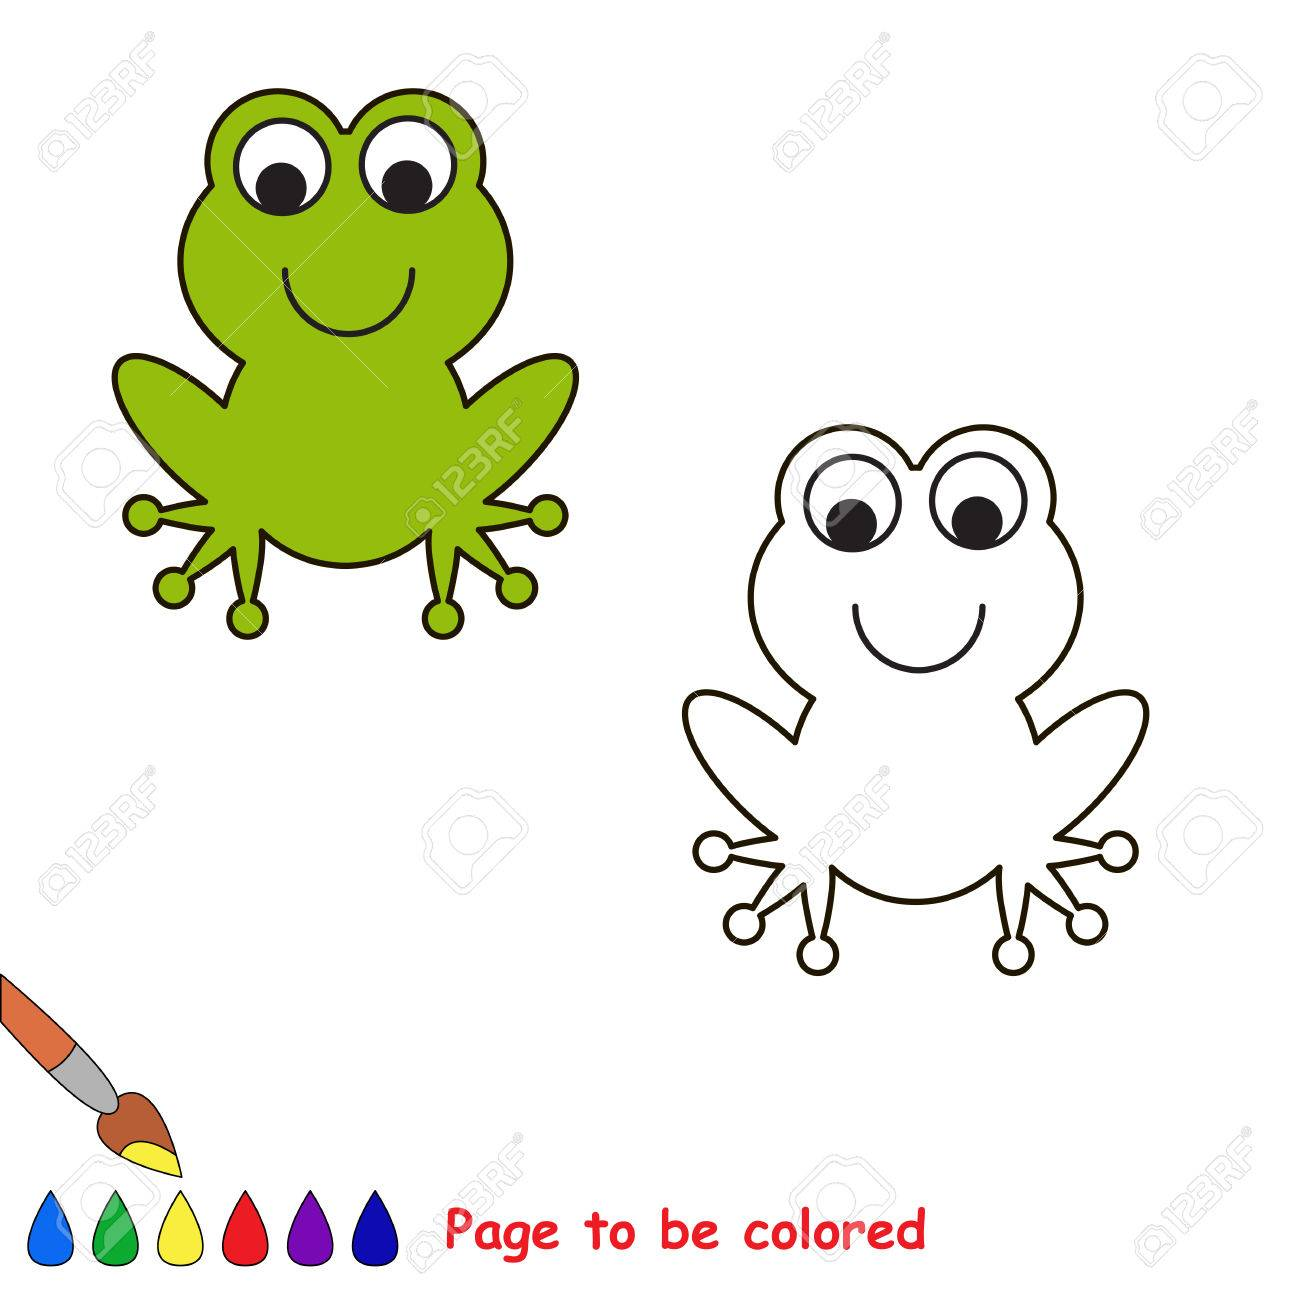 cartoon frog to be colored coloring book for children royalty free